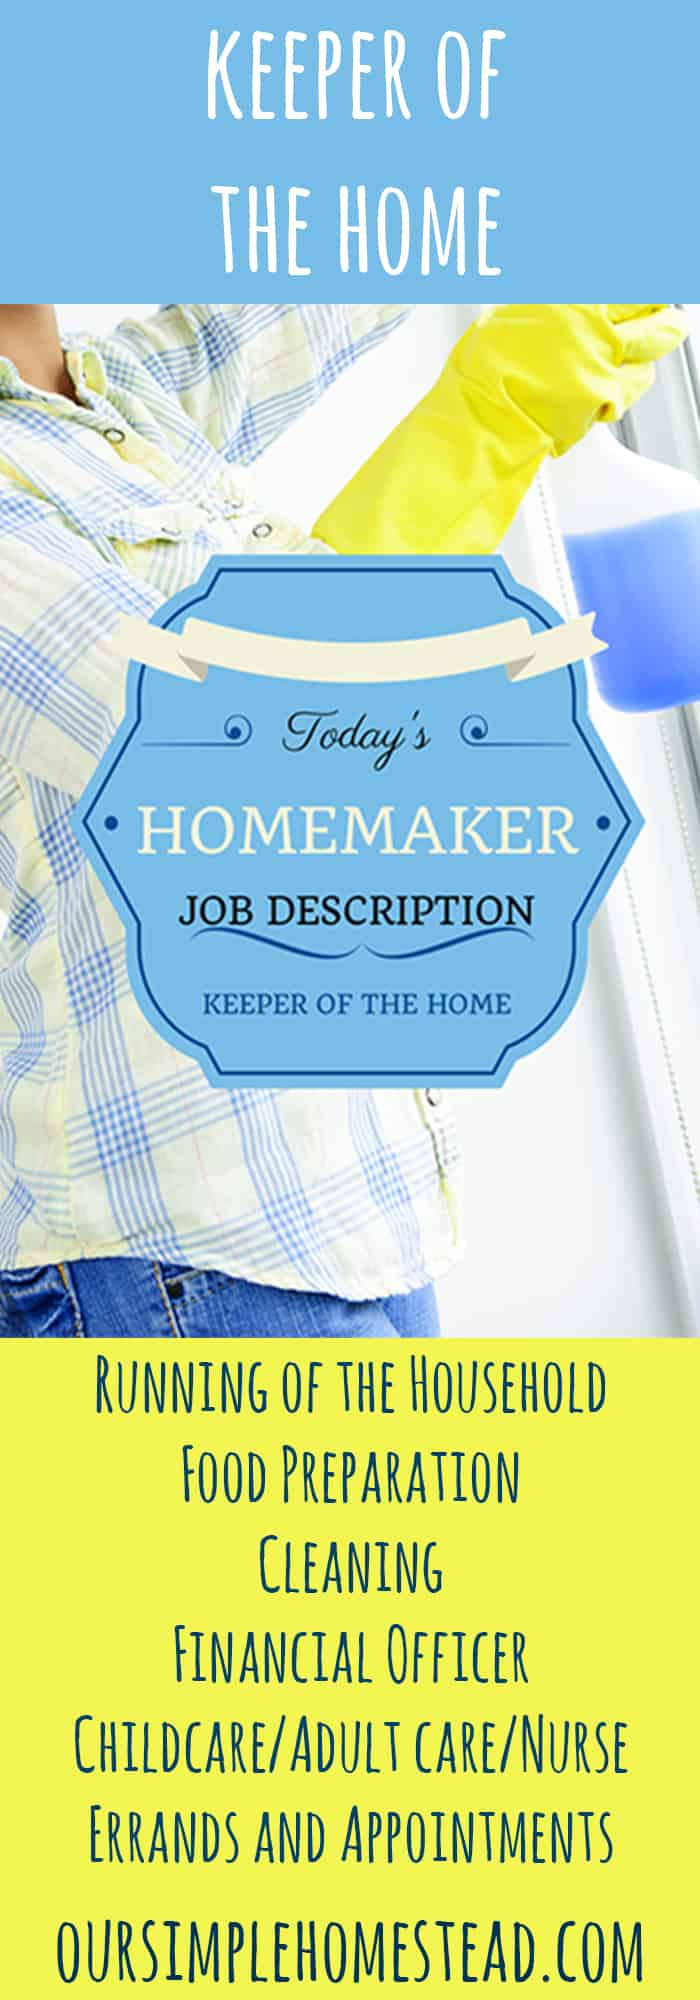 homemaker job description